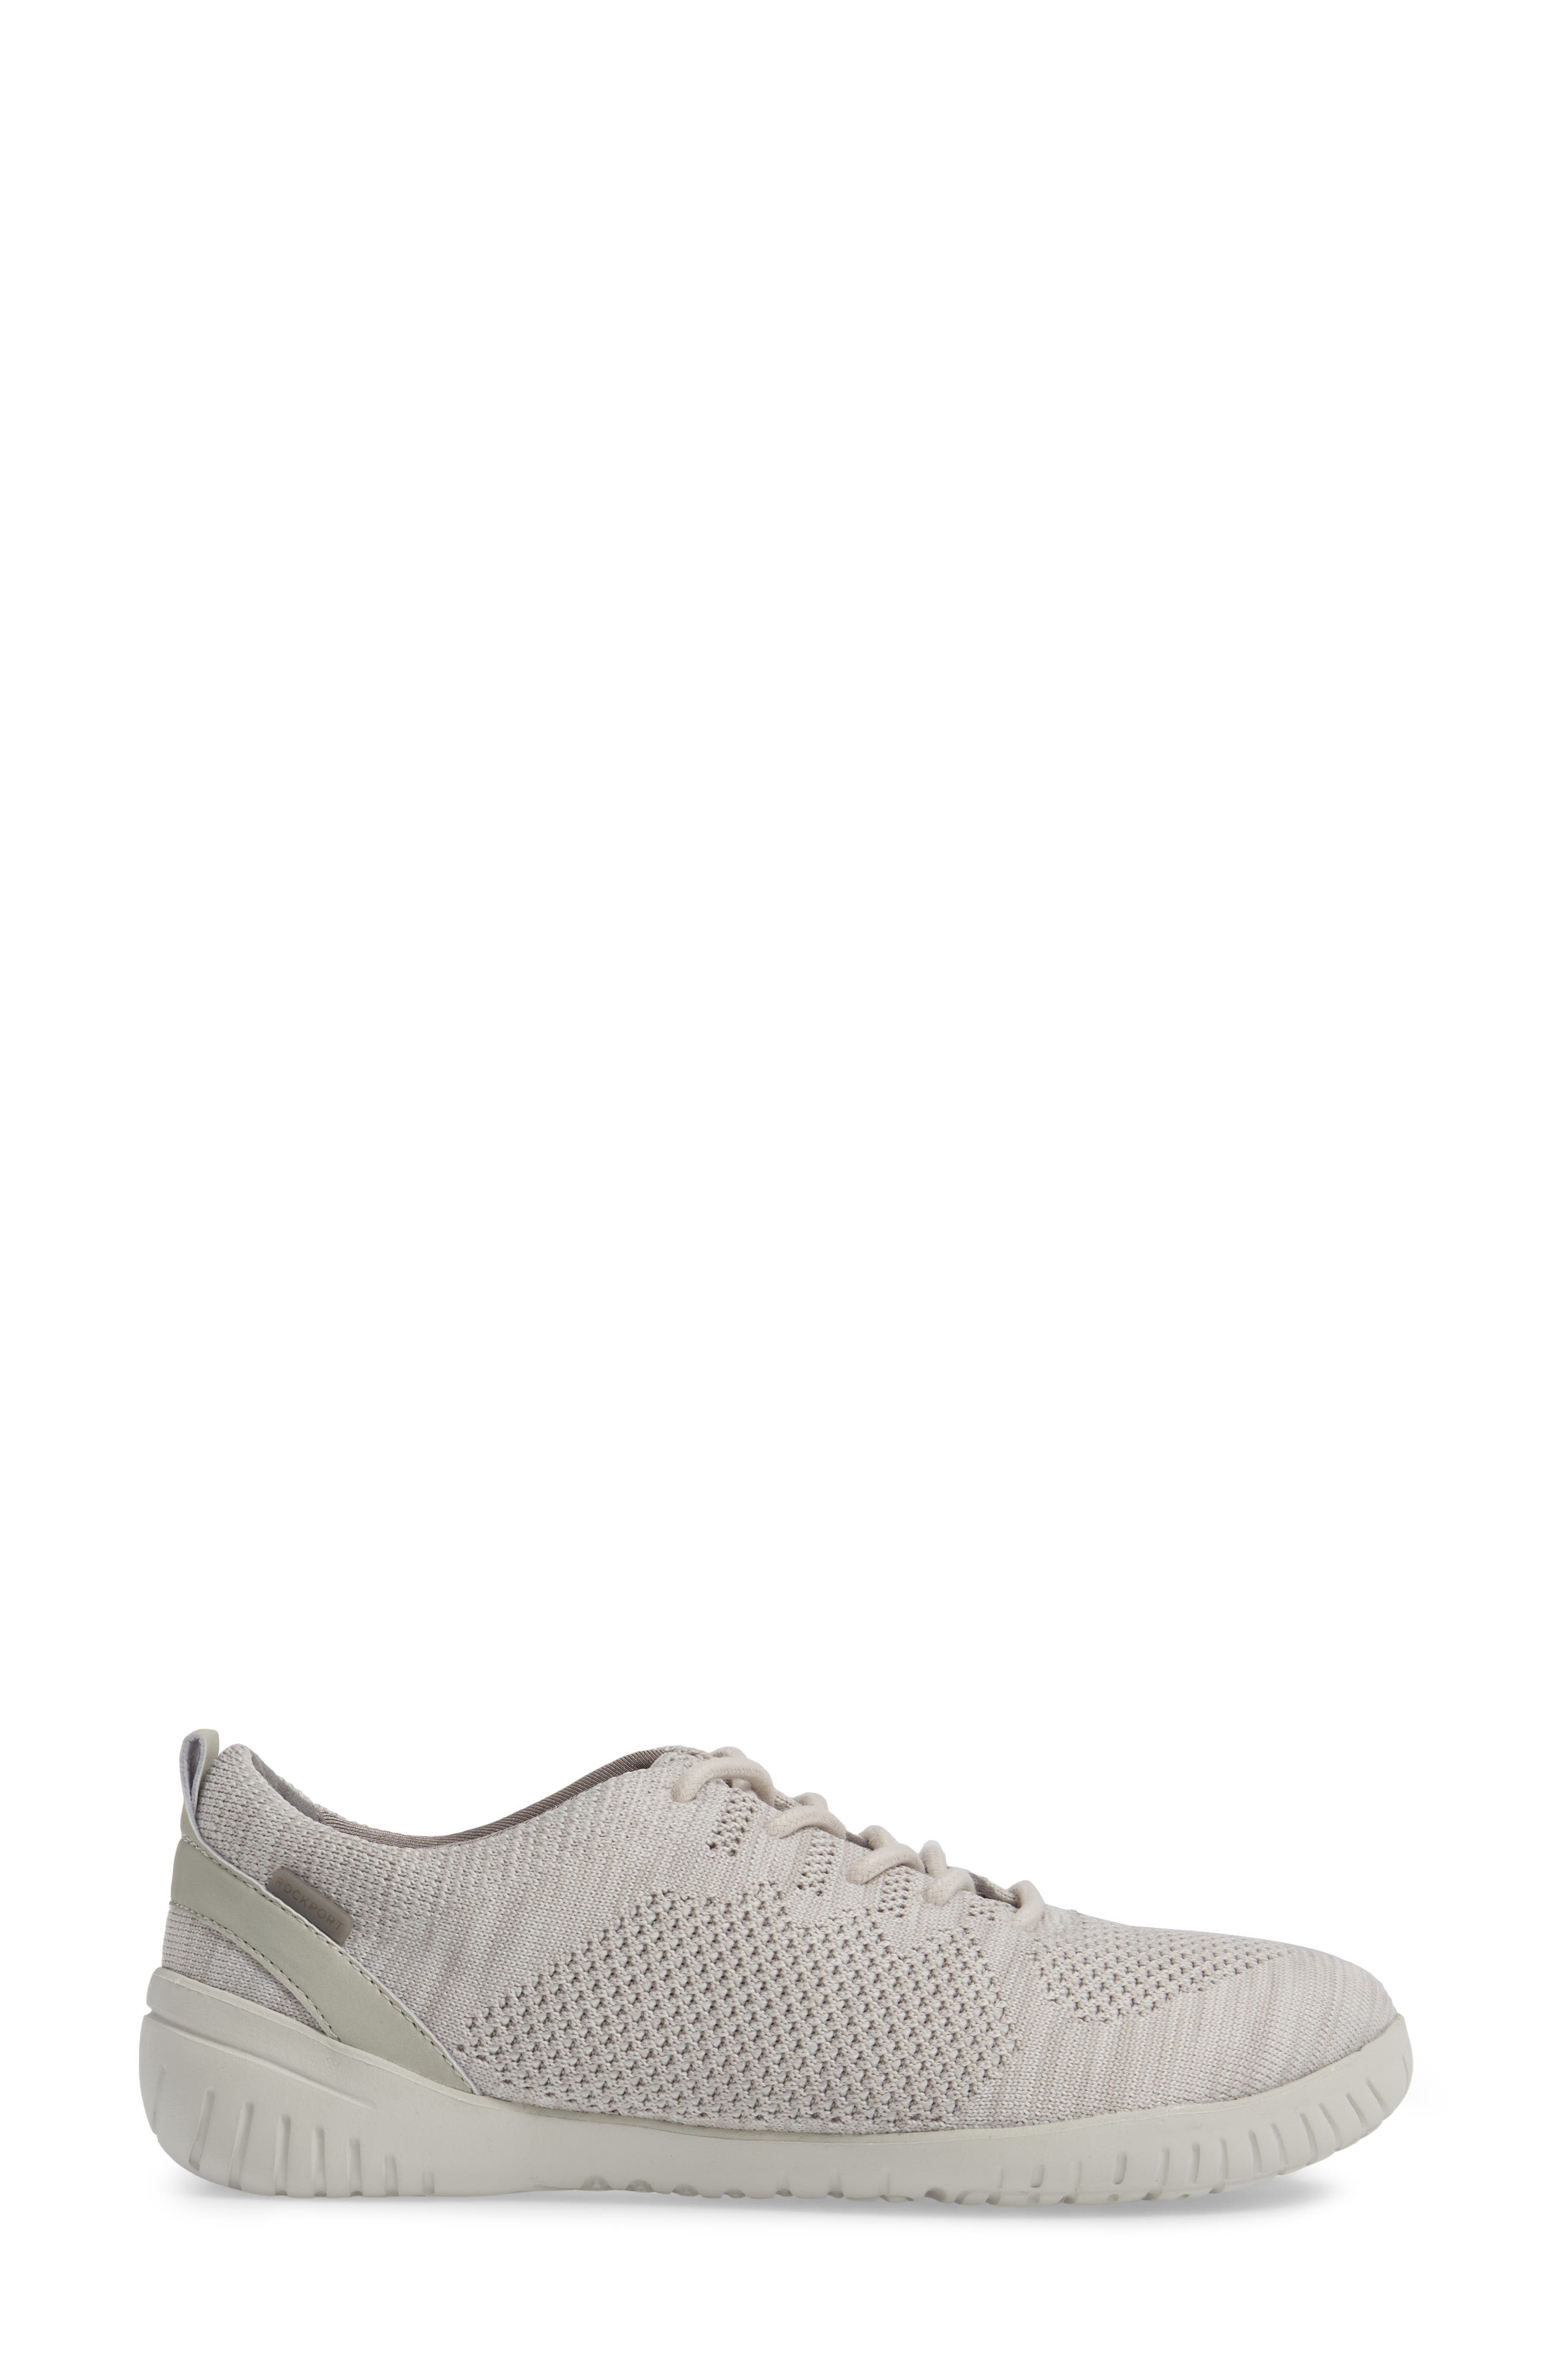 Raelyn Knit Sneaker,                             Alternate thumbnail 3, color,                             020